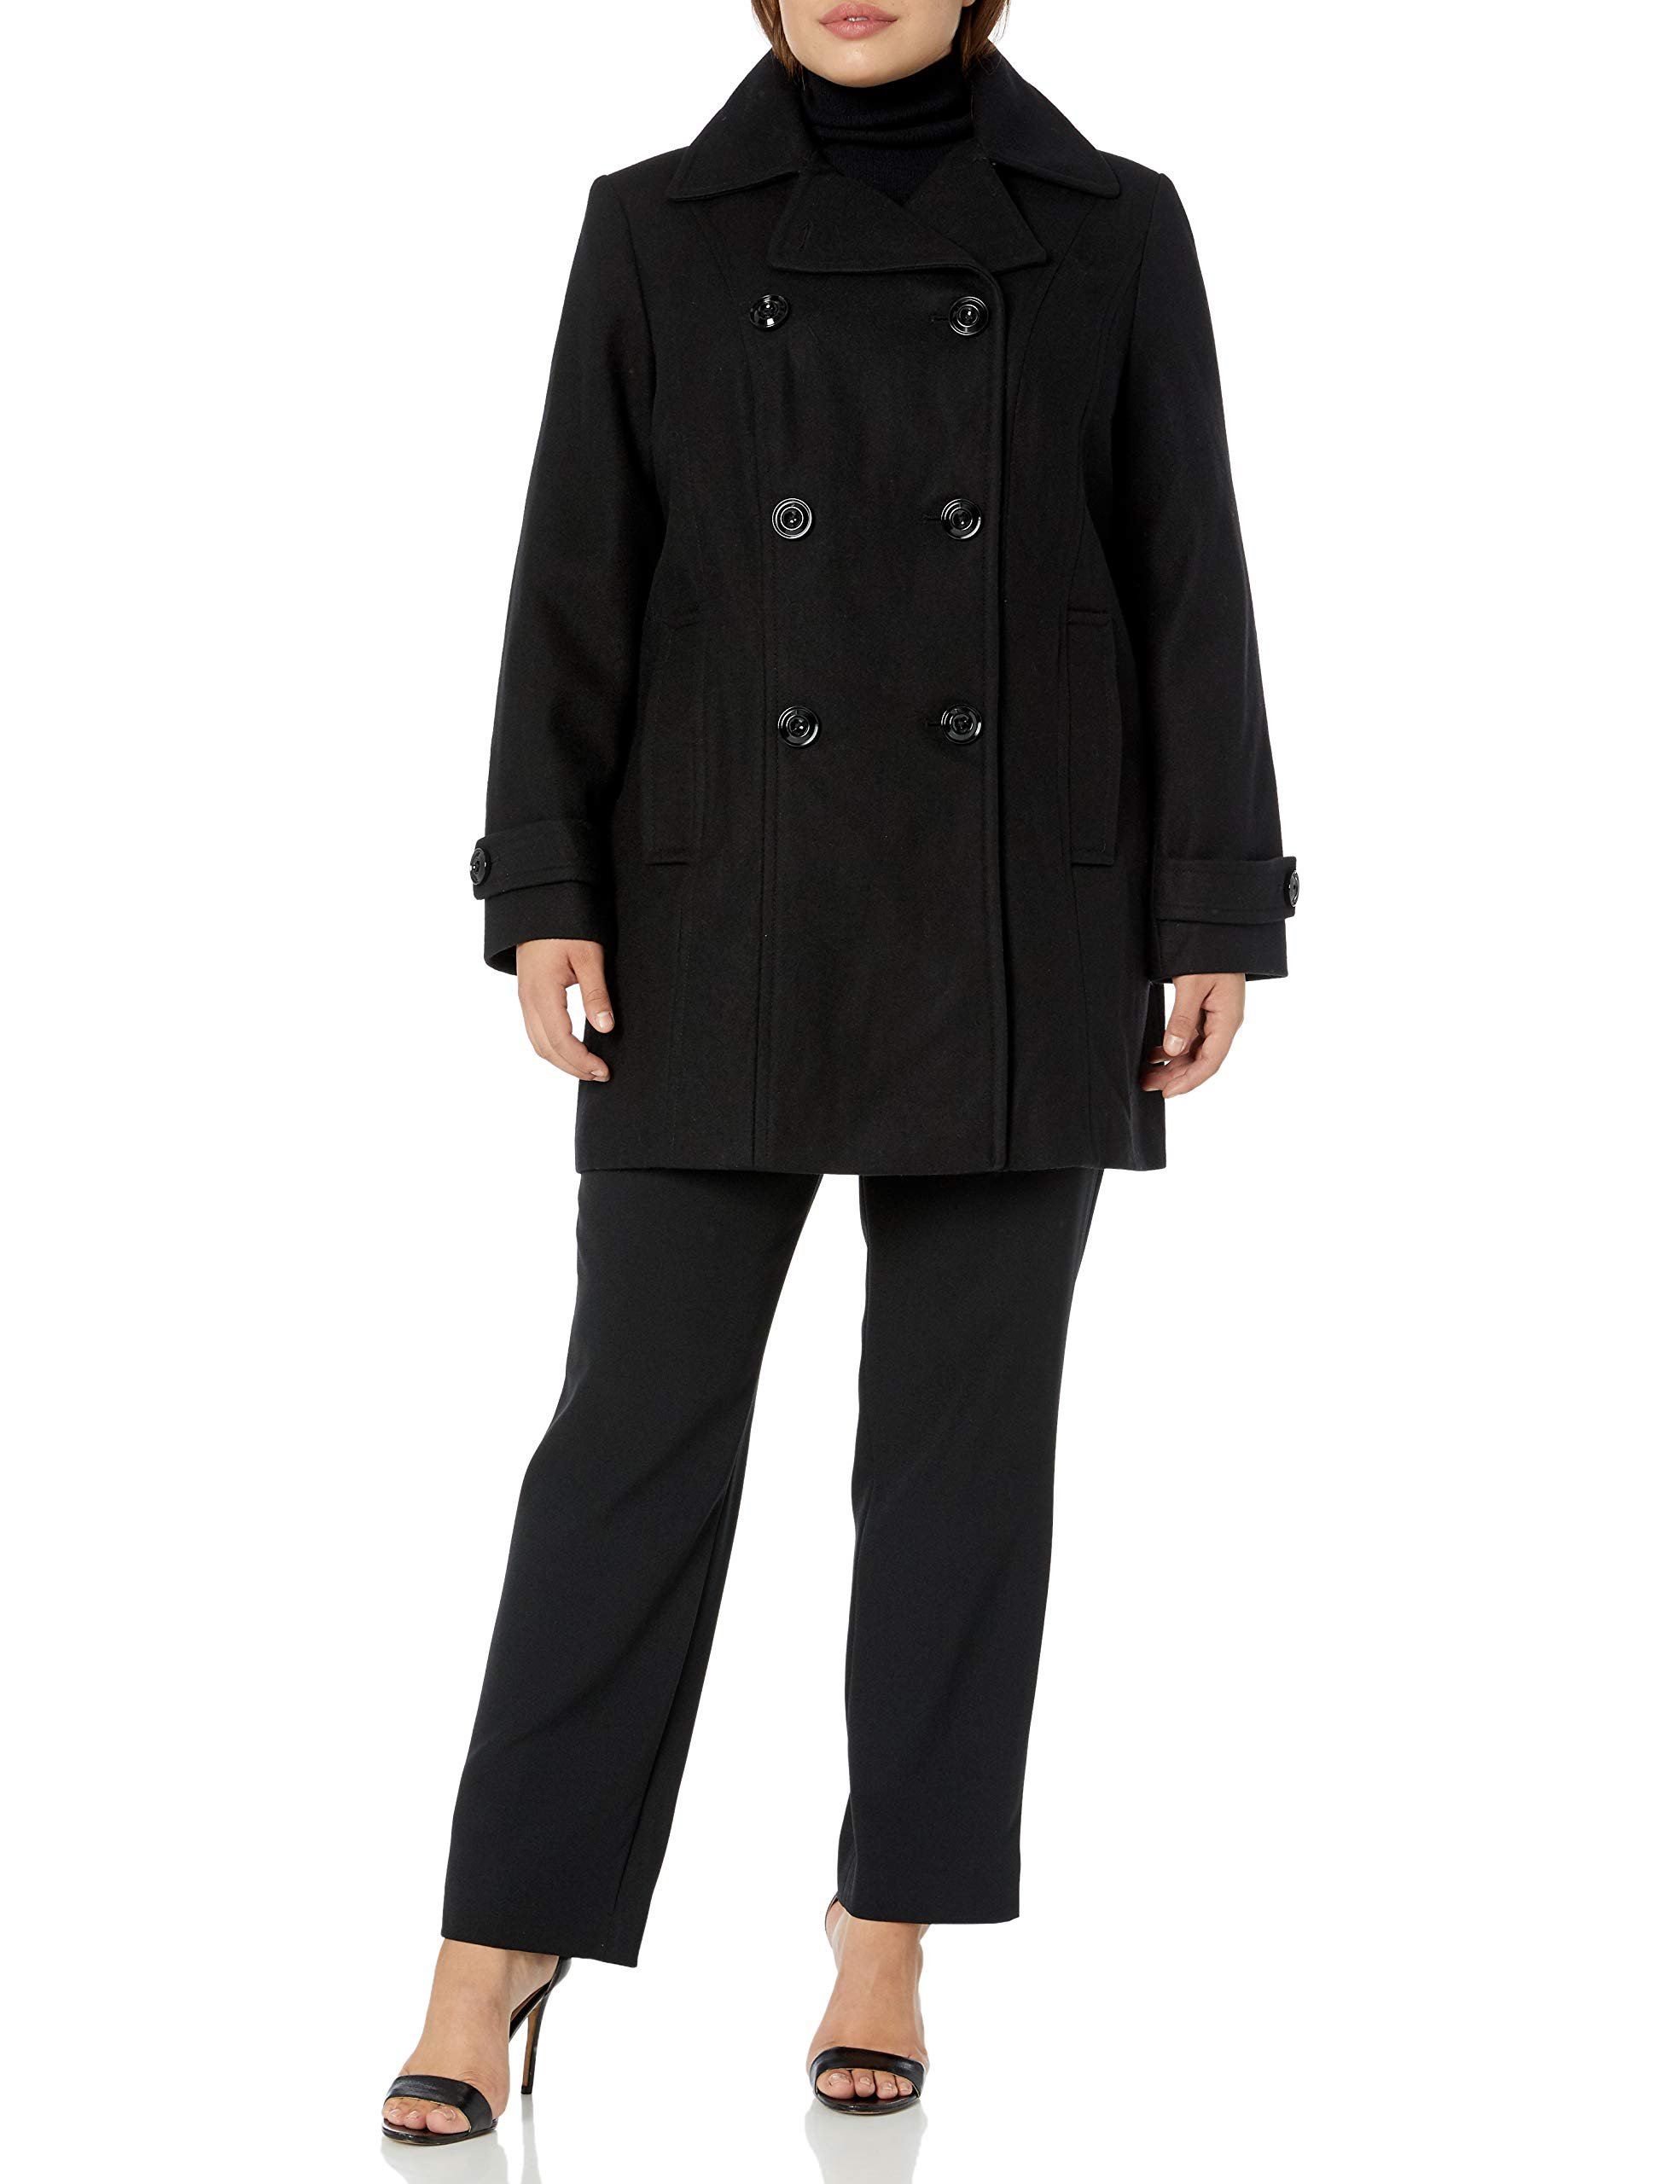 Anne Klein Women's Plus Size Classic Double Breasted Coat, Black, 1X by Anne Klein